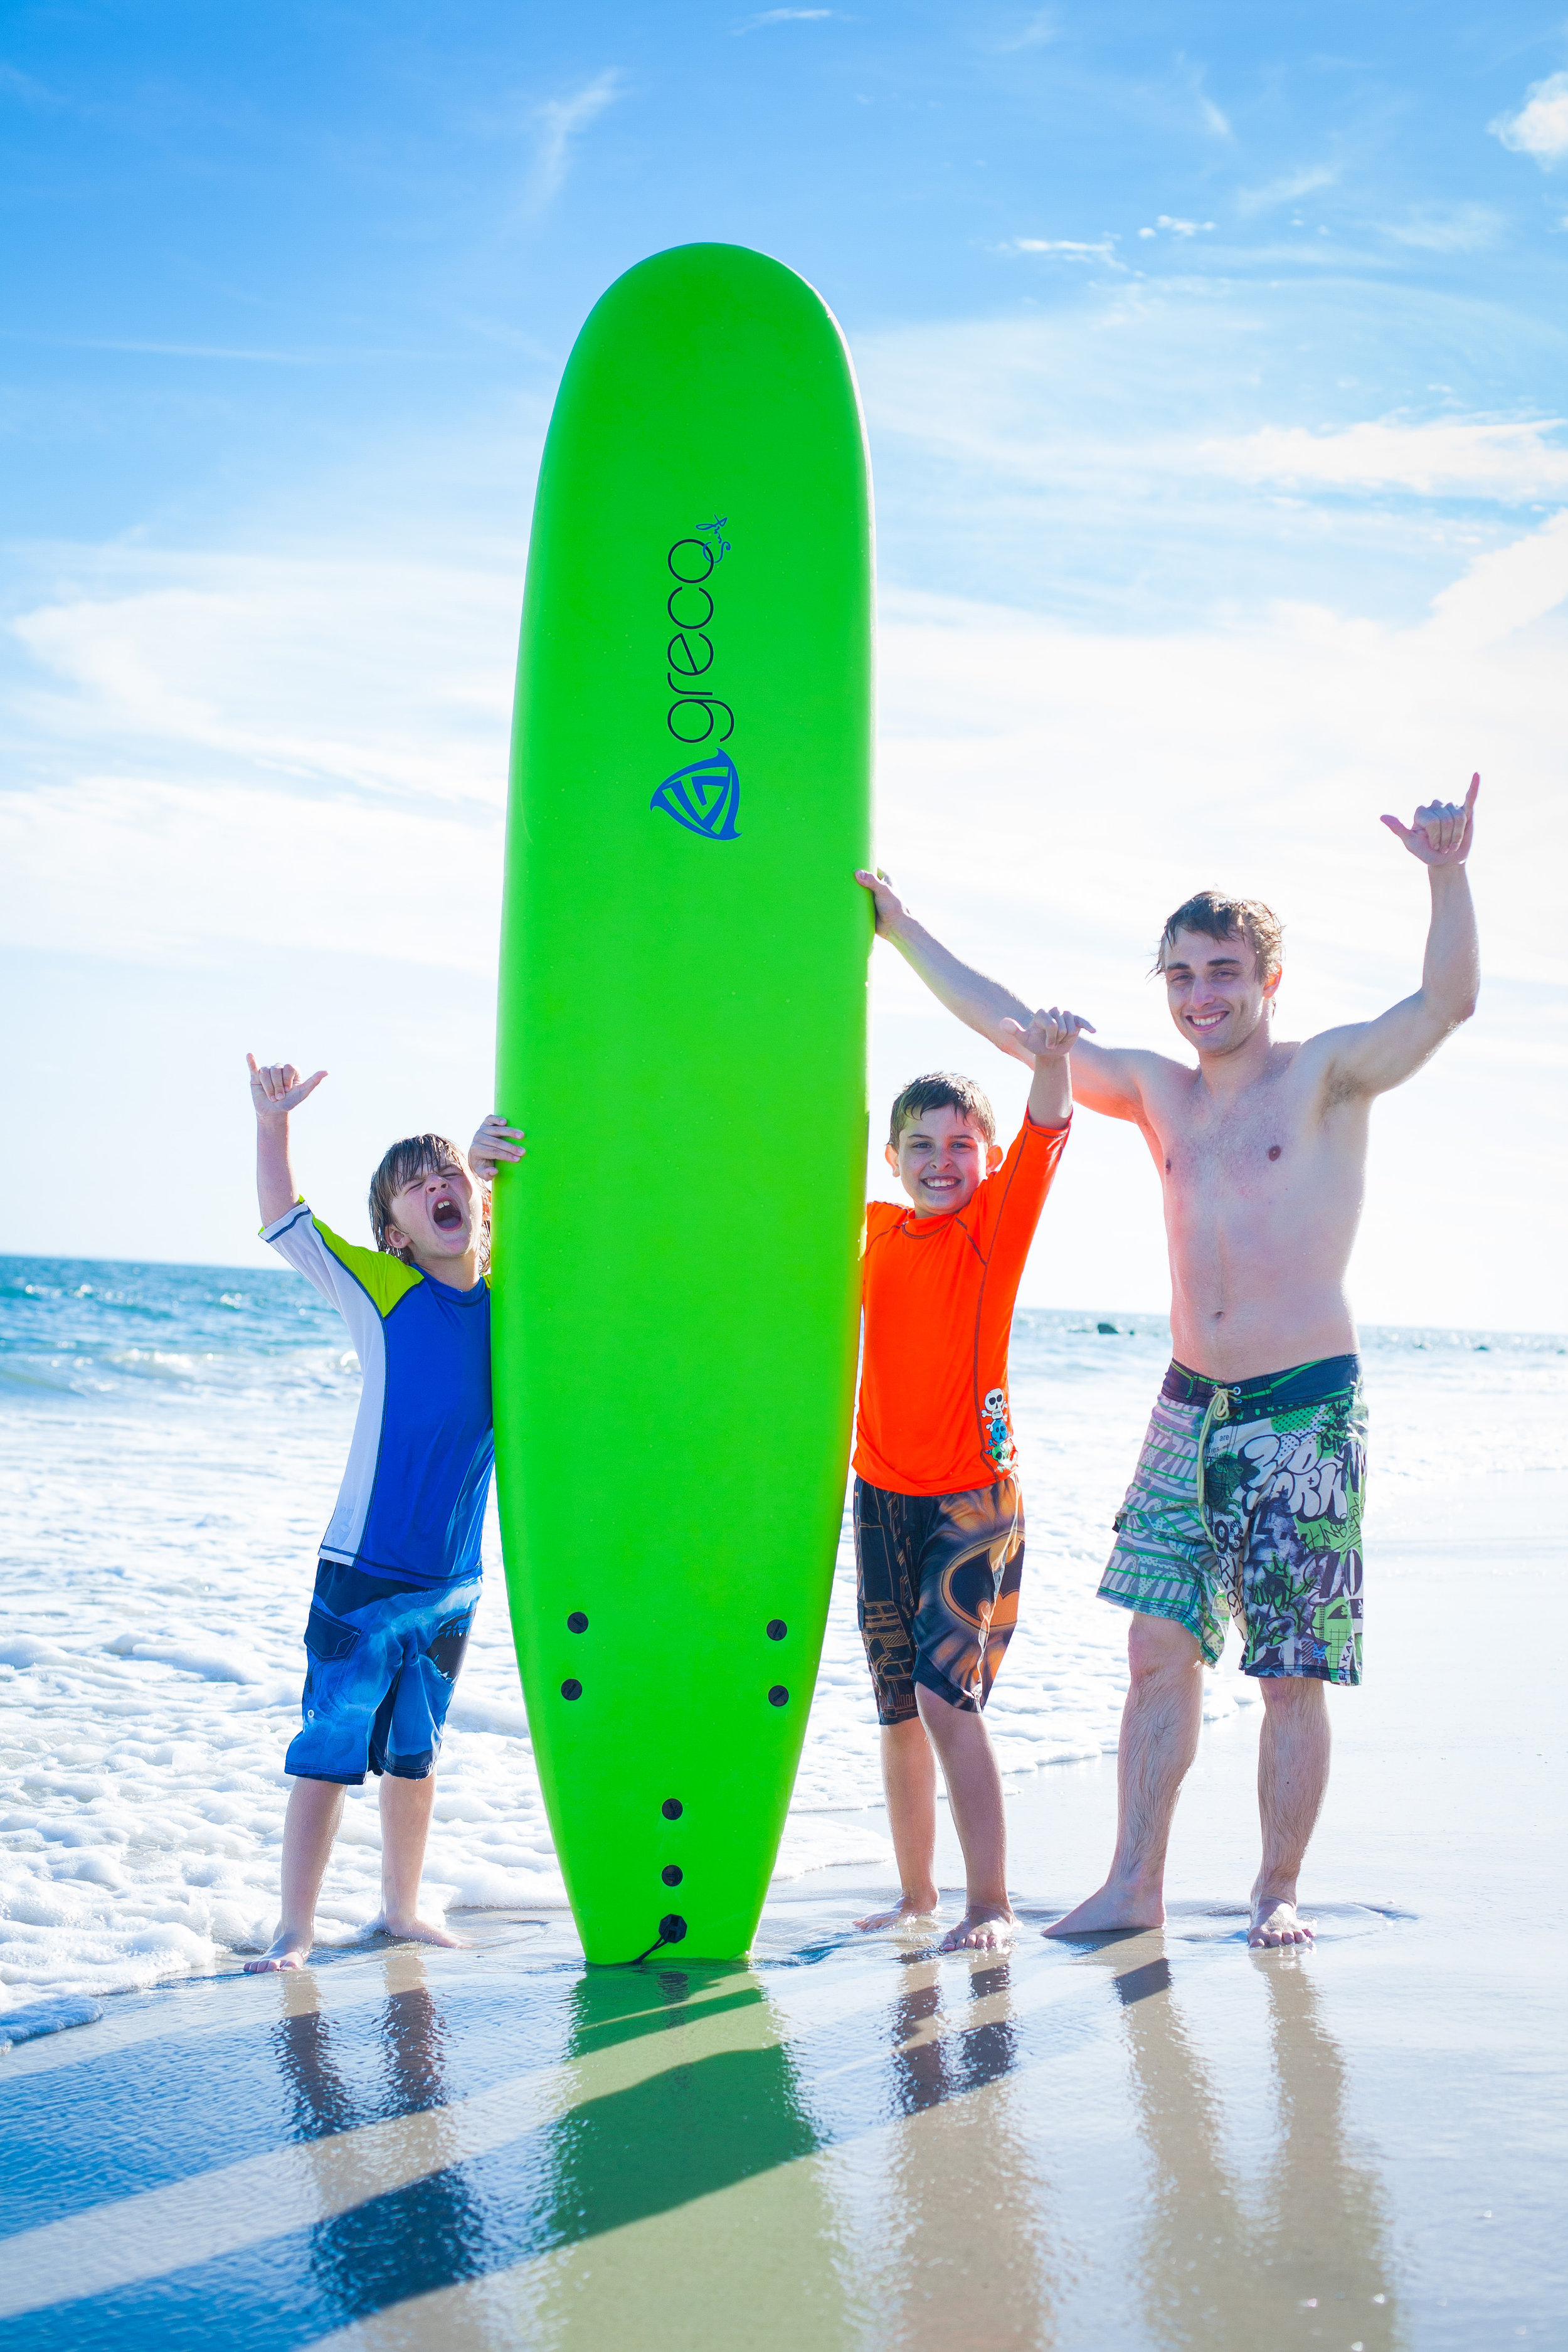 GROUP SURFING LESSONS - FOR GROUPS OF 3 OR MORE PEOPLE,WE OFFER A GROUP RATE OF $45 PER PERSON (1-HOUR) OR $75 PER PERSON (2-HOURS). CALL US AT (516) 996-4100 TO SET UP A GROUP LESSON!